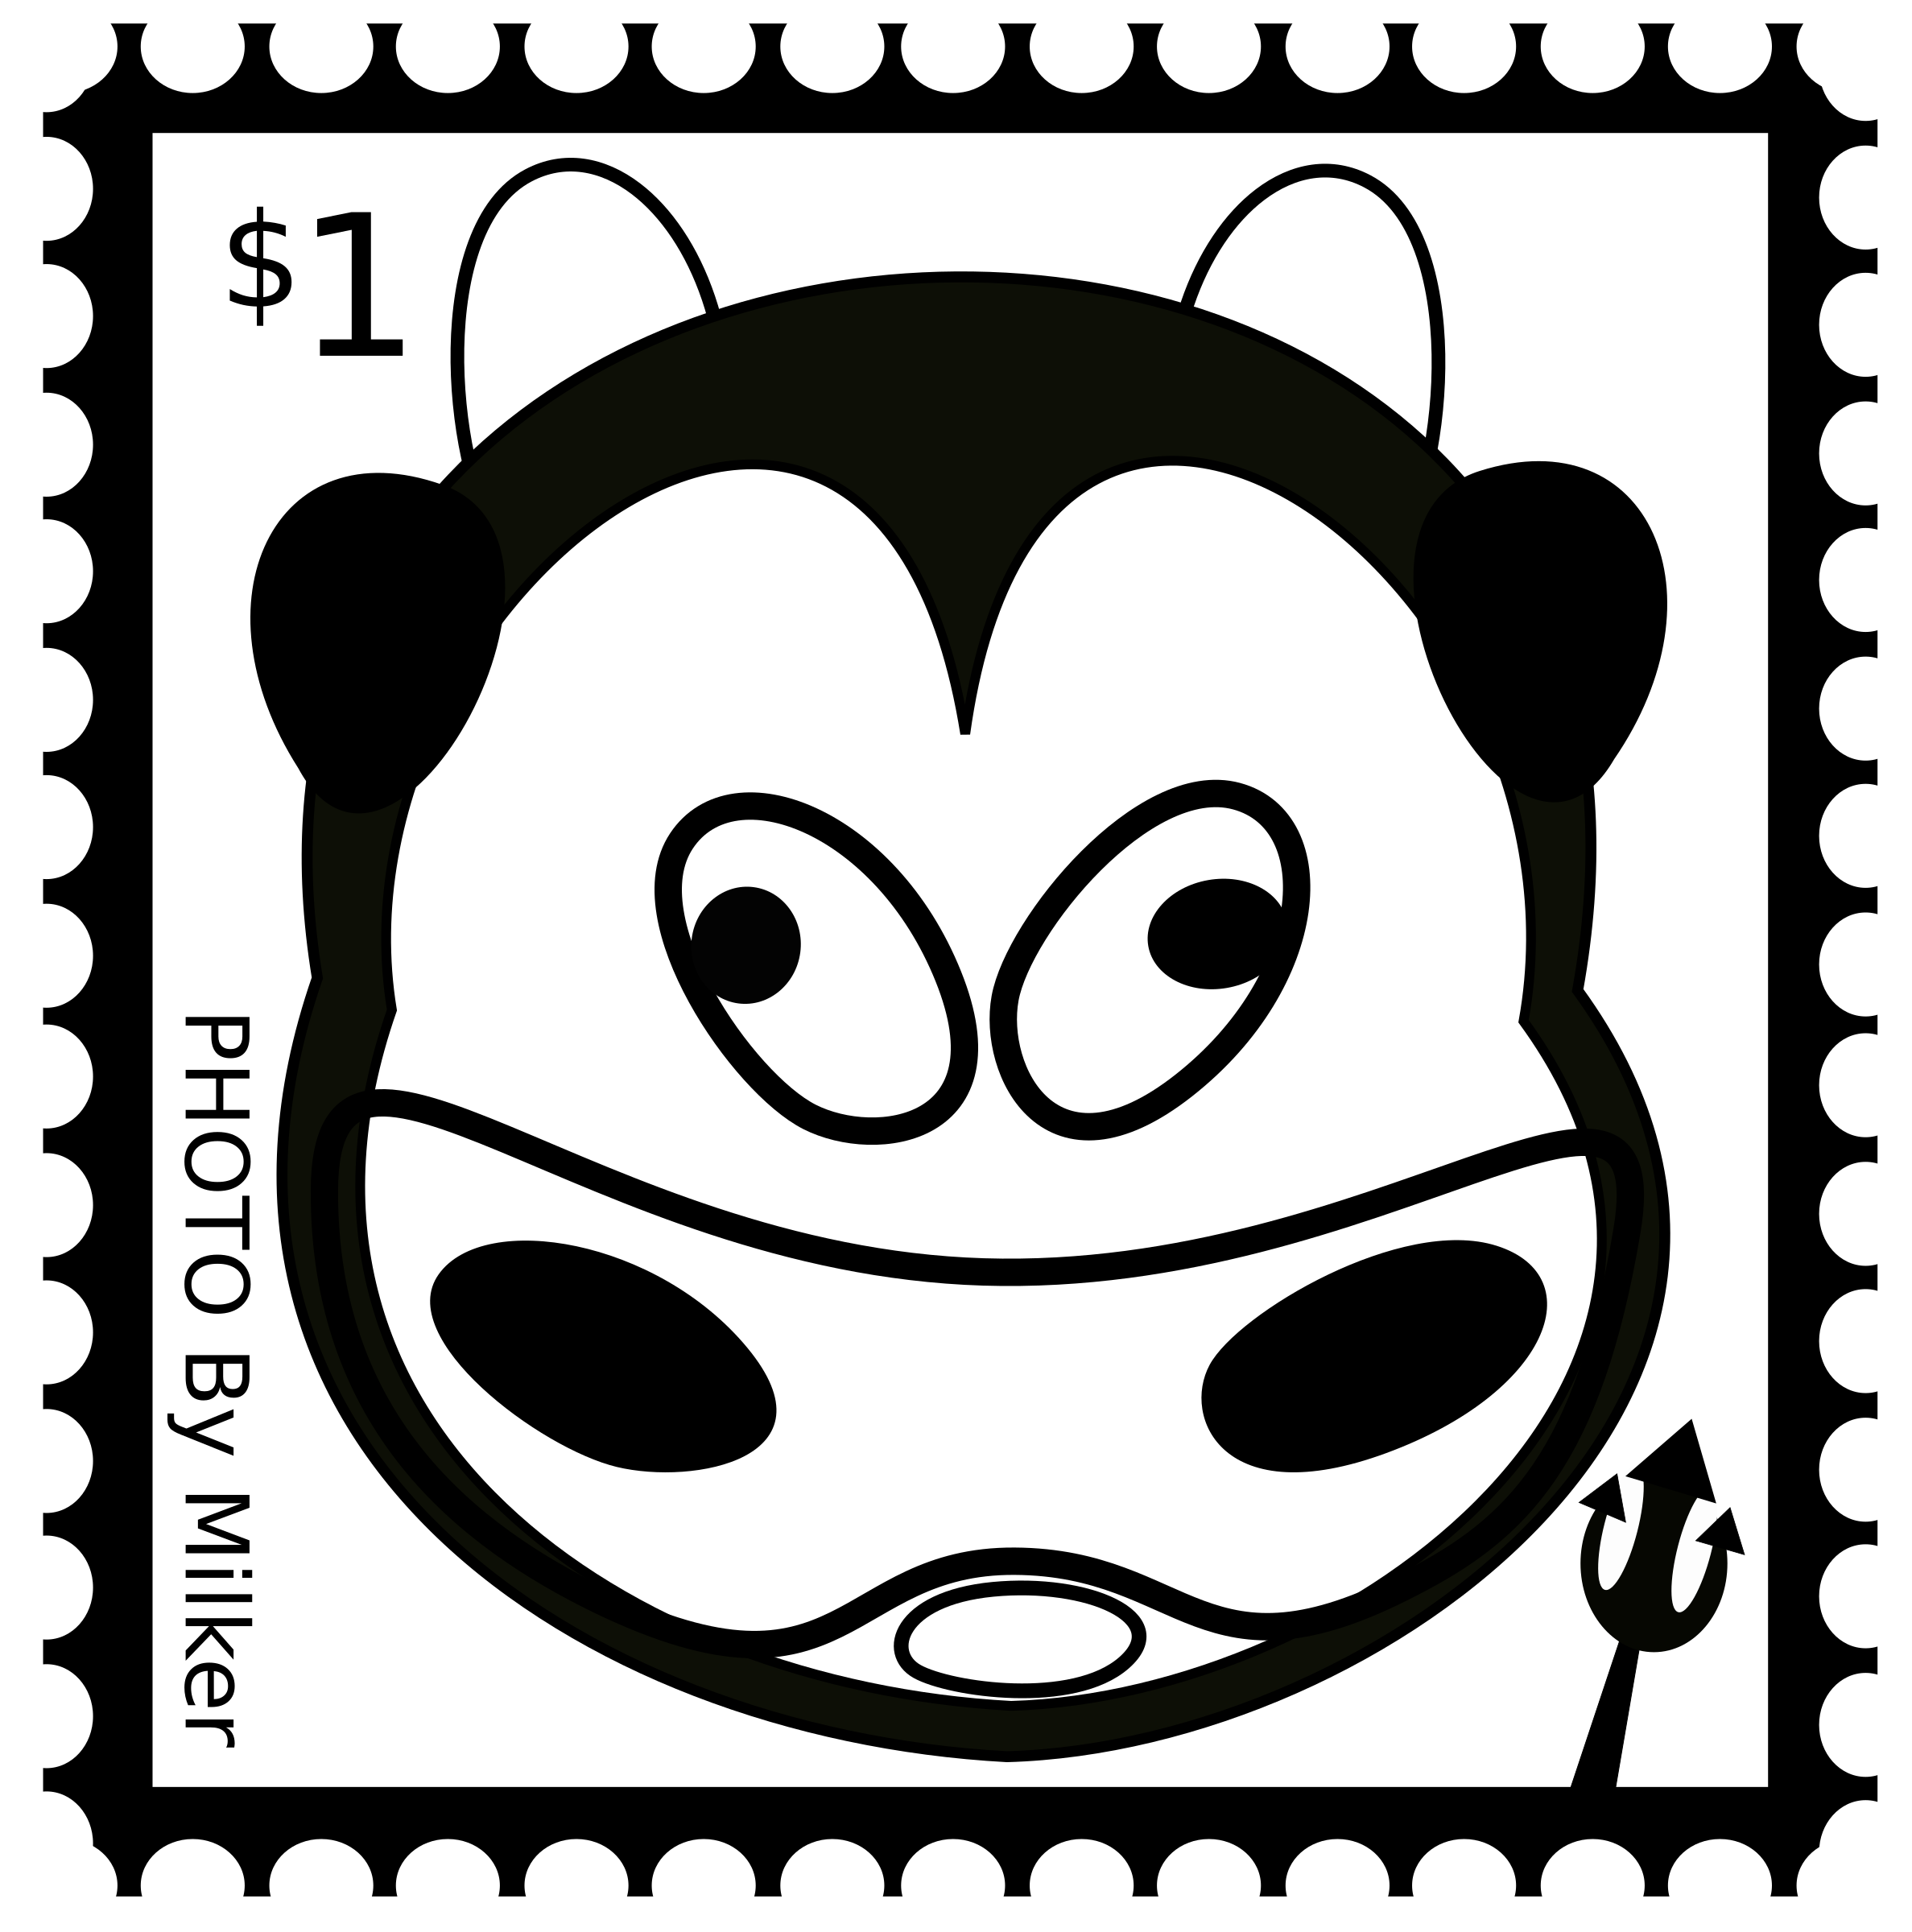 Stamp clipart. Cow big image png